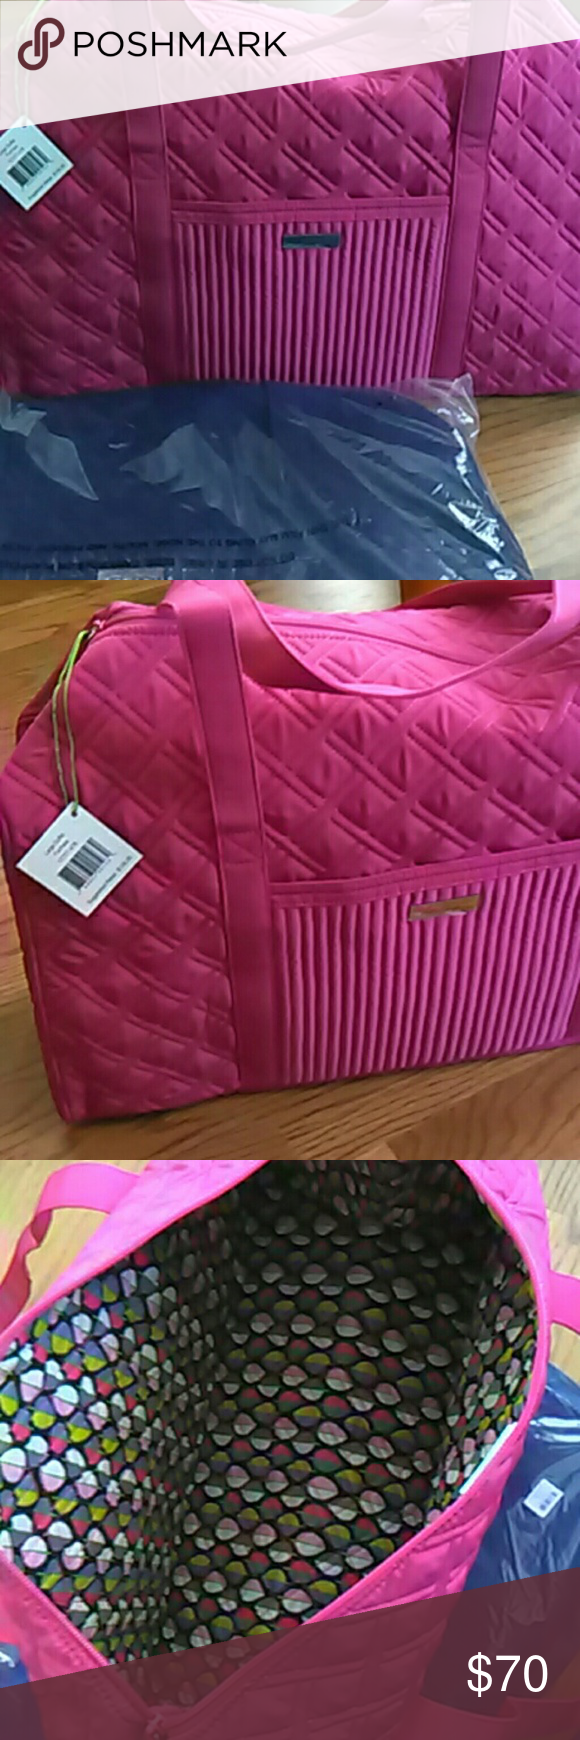 NWT Vera Bradley large duffel travel bag Gorgeous large duffel holds a LOT!  Perfect for any summer travel plans.  I have this in fuchsia and cobalt blue. Both colors are amazing.  The pink is also available in my closet. Vera Bradley Bags Travel Bags